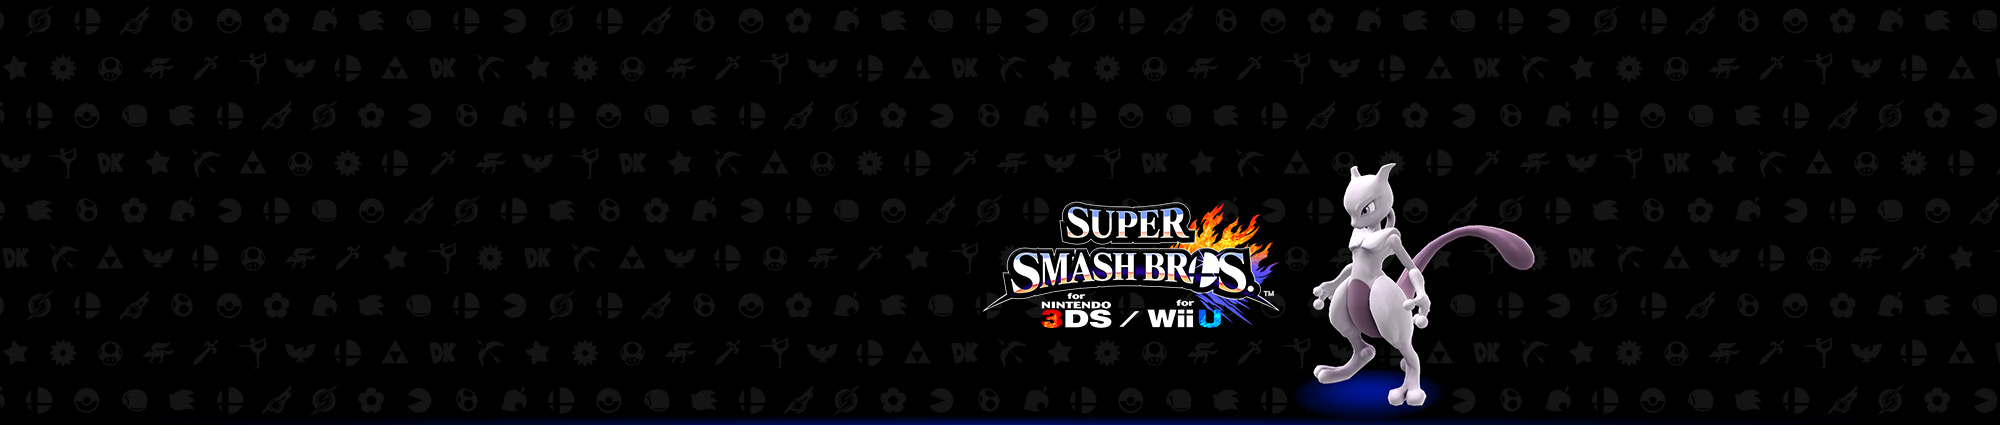 Super Smash Bros. Club Nintendo-Aktion